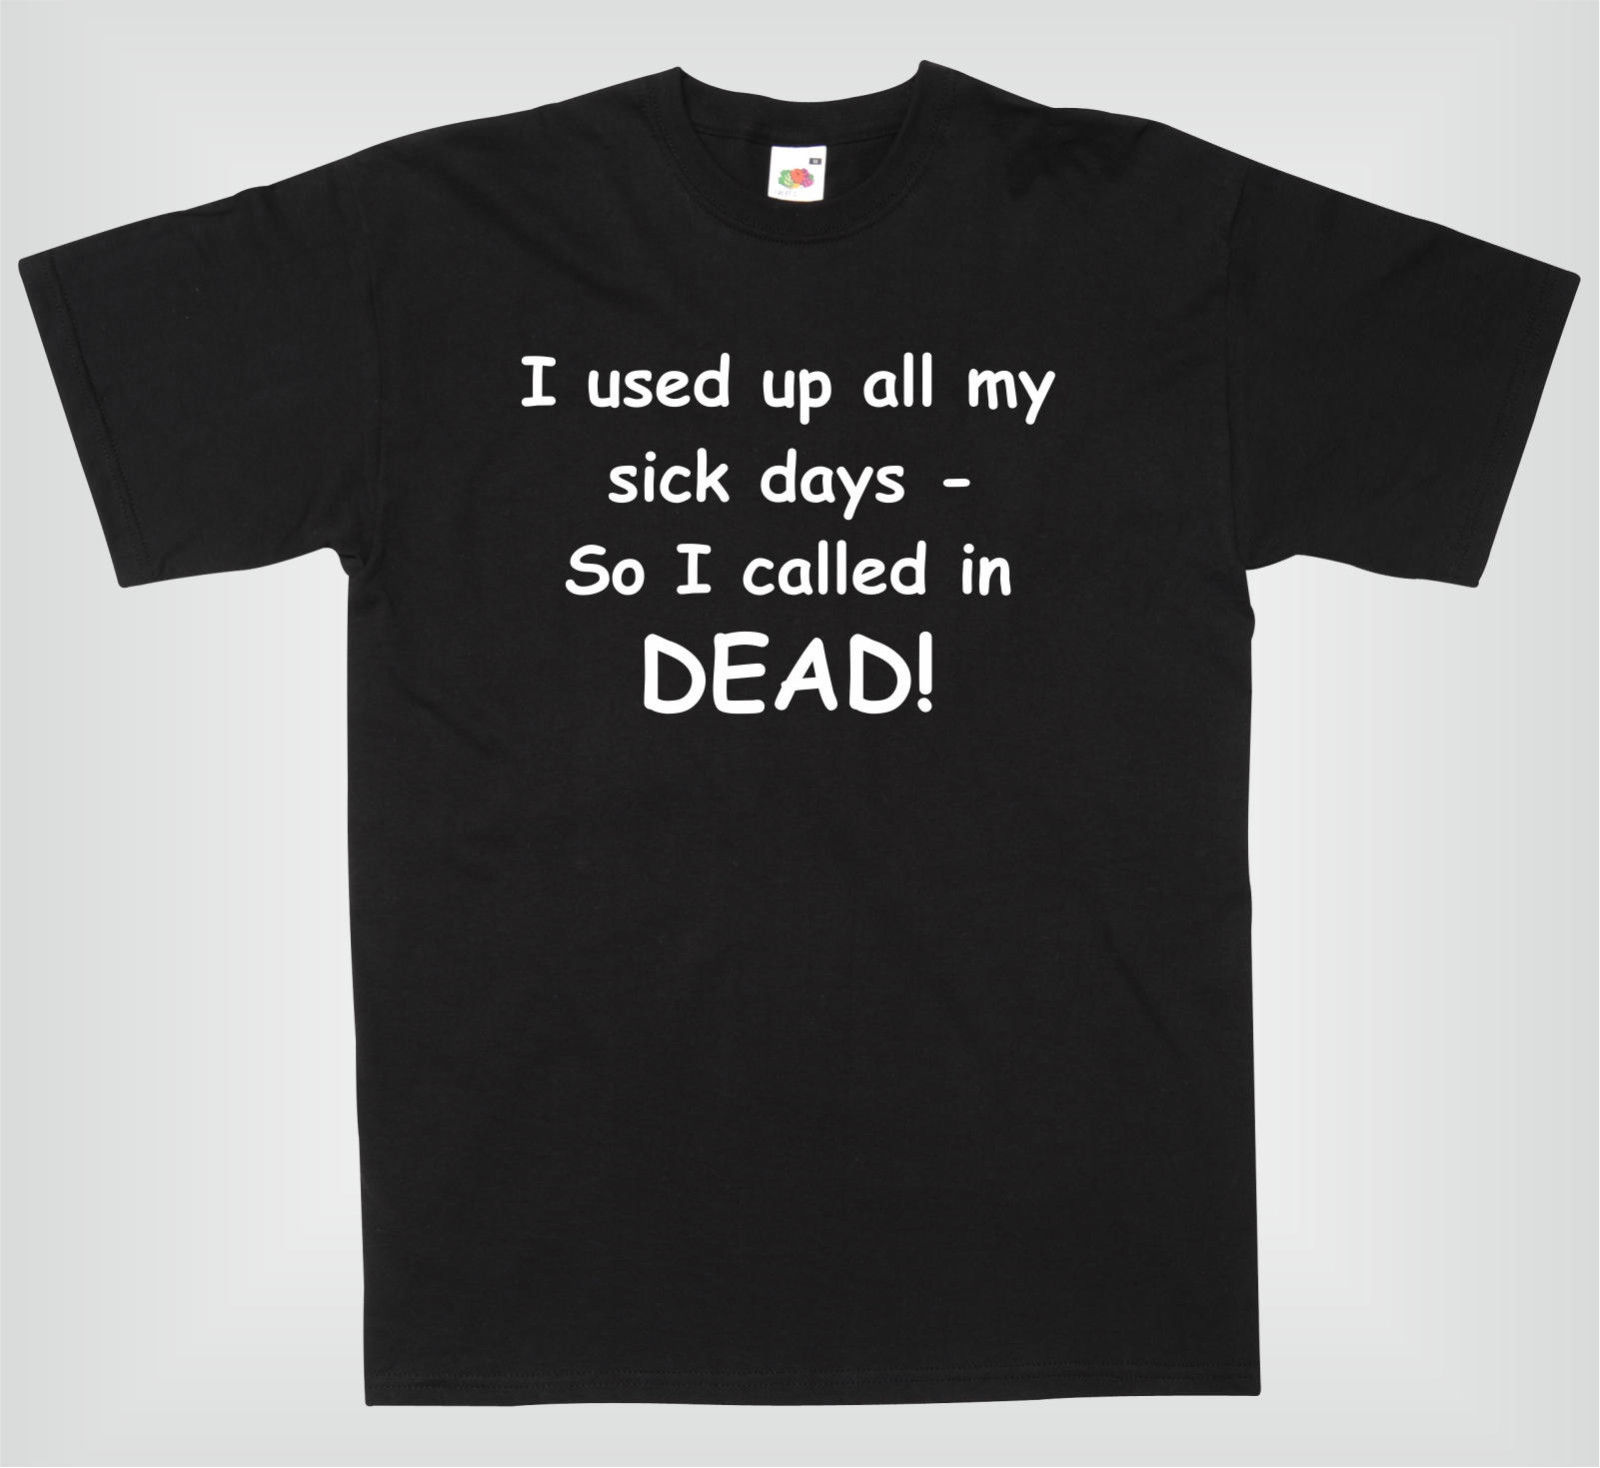 CAMISETA DIVERTIDA I USED MY SICK DAYS SO I CALLED IN DEAD MENS FUNNY T-SHIRT Fashion Design Free Shipping